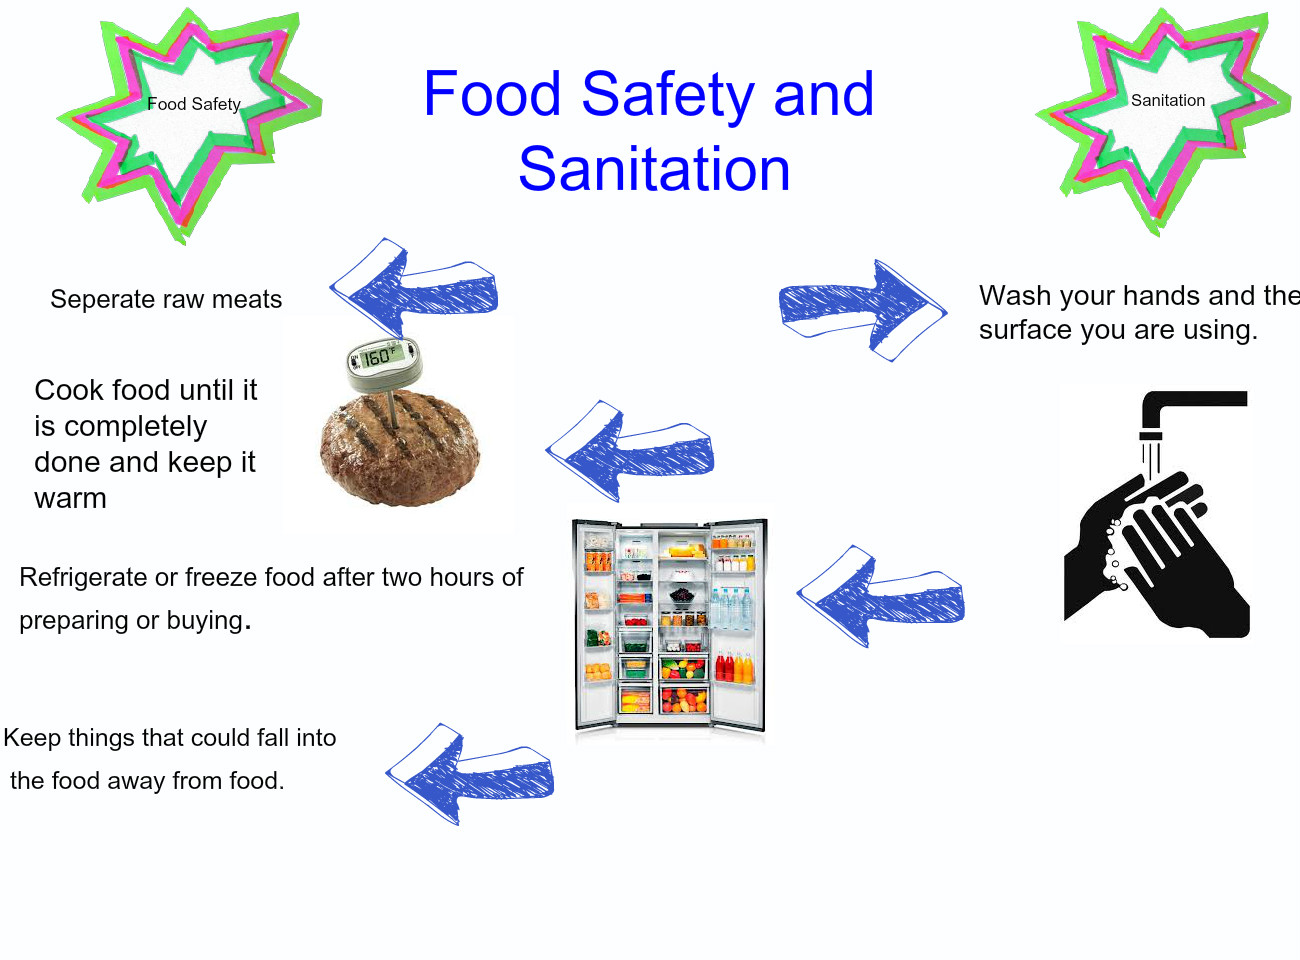 food safety research papers Analysing and managing events that involve food safety management process is the function of a food safety practitioner, managers and administrators of an enterprise that handles food because this type of events can be predicted or unexpected, involve human lives and additional fixing and improvement.